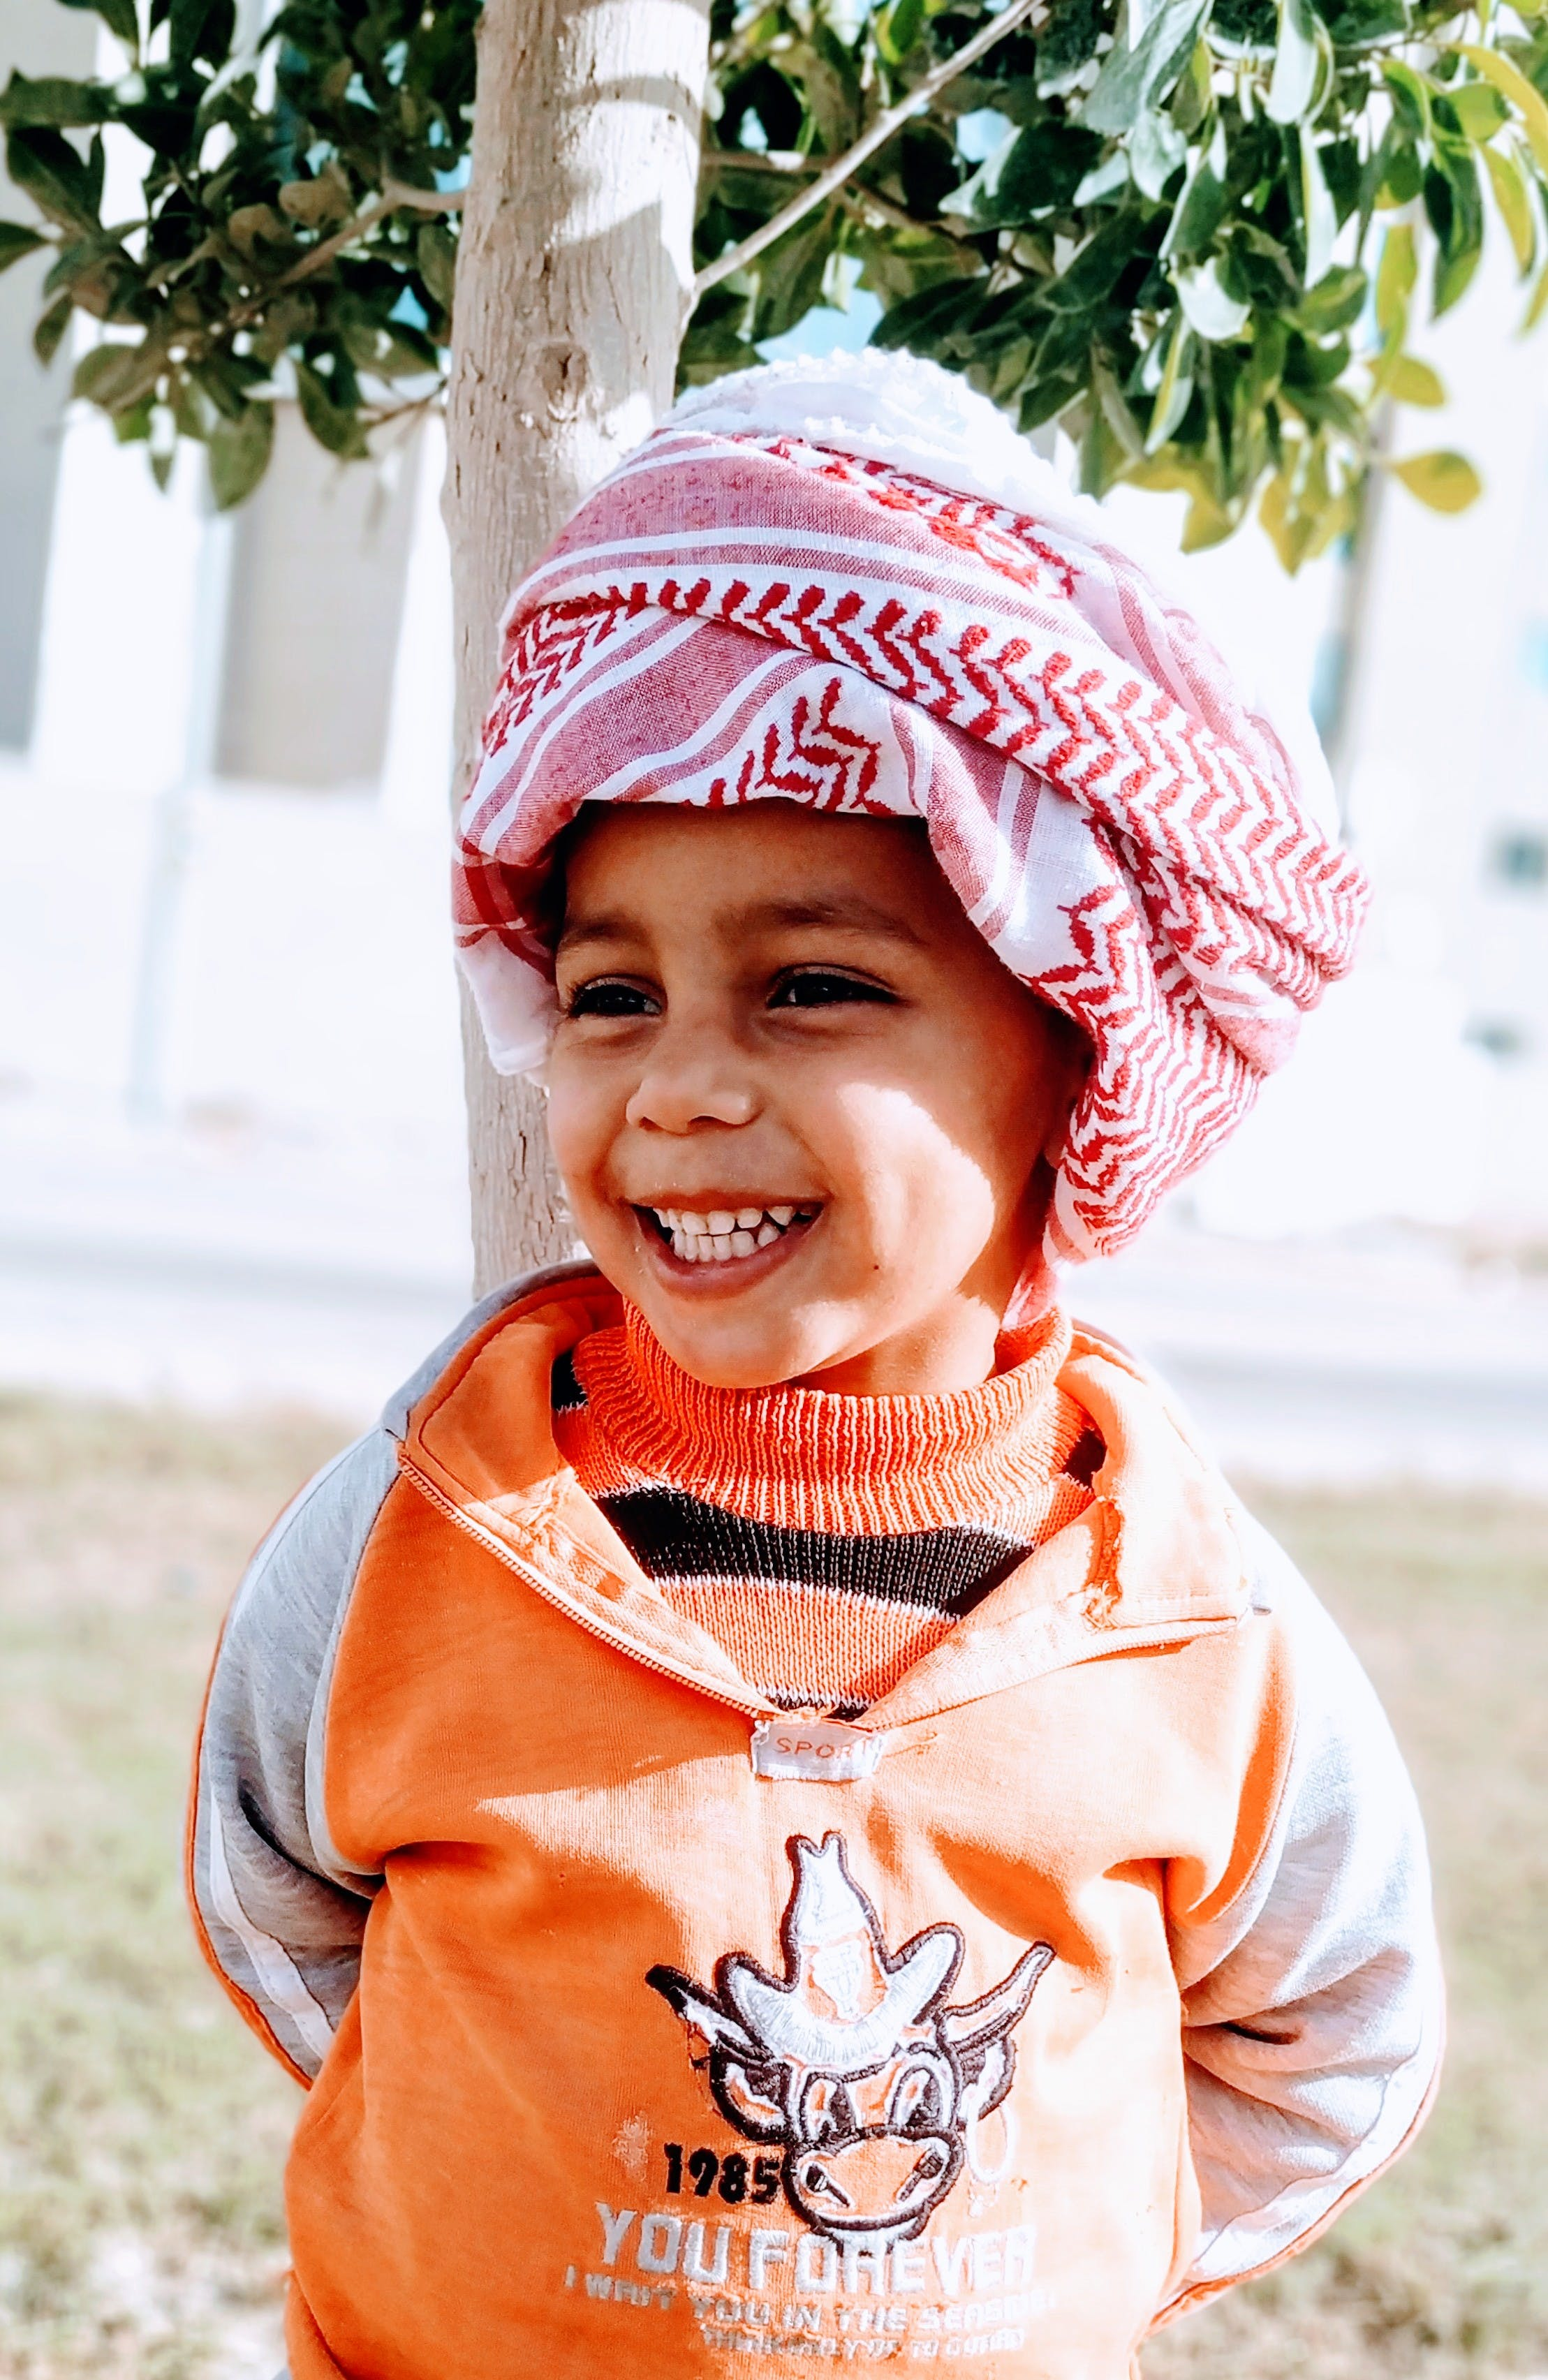 Photo of Smiling Boy in Keffiyeh Standing Near Tree